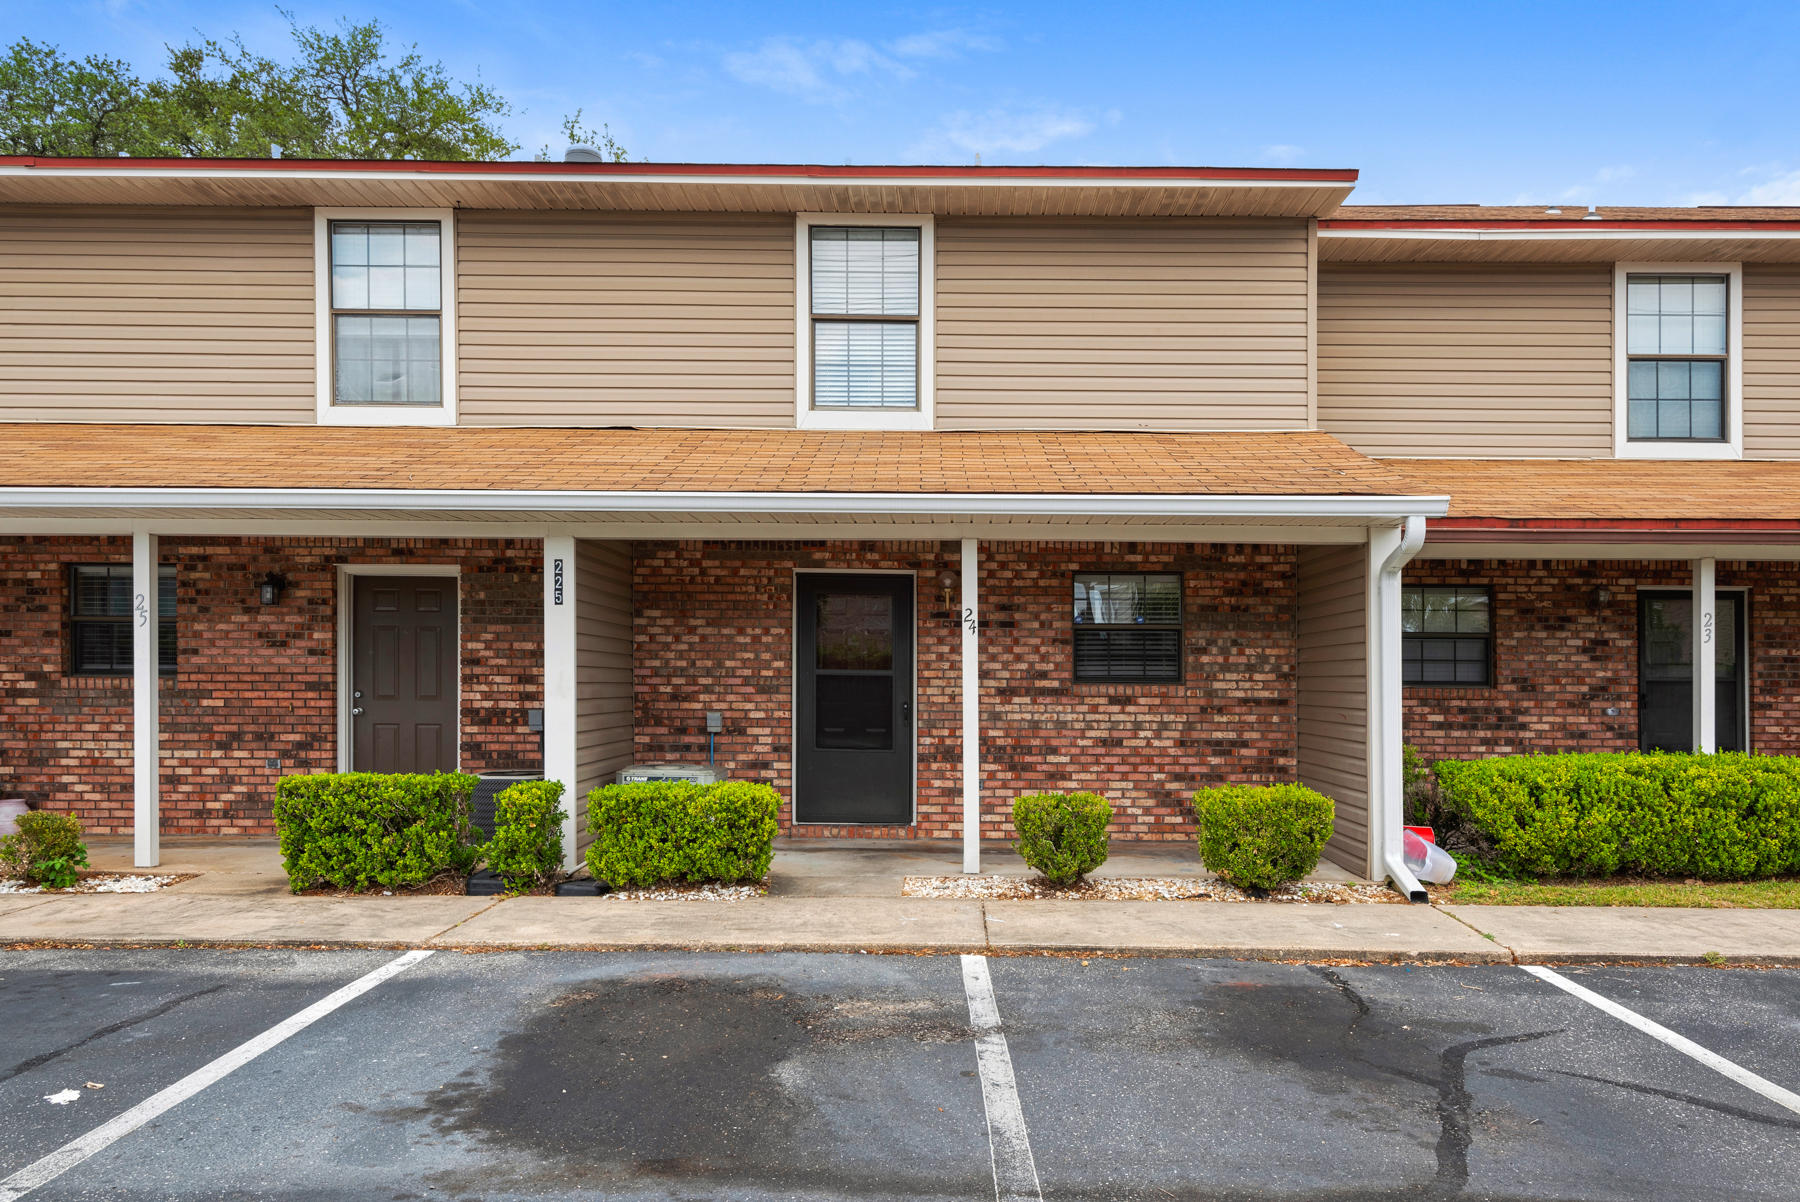 Two story, 2 bedroom townhome located in Fort Walton Beach. May 2020 upgrades include: Fully remodel